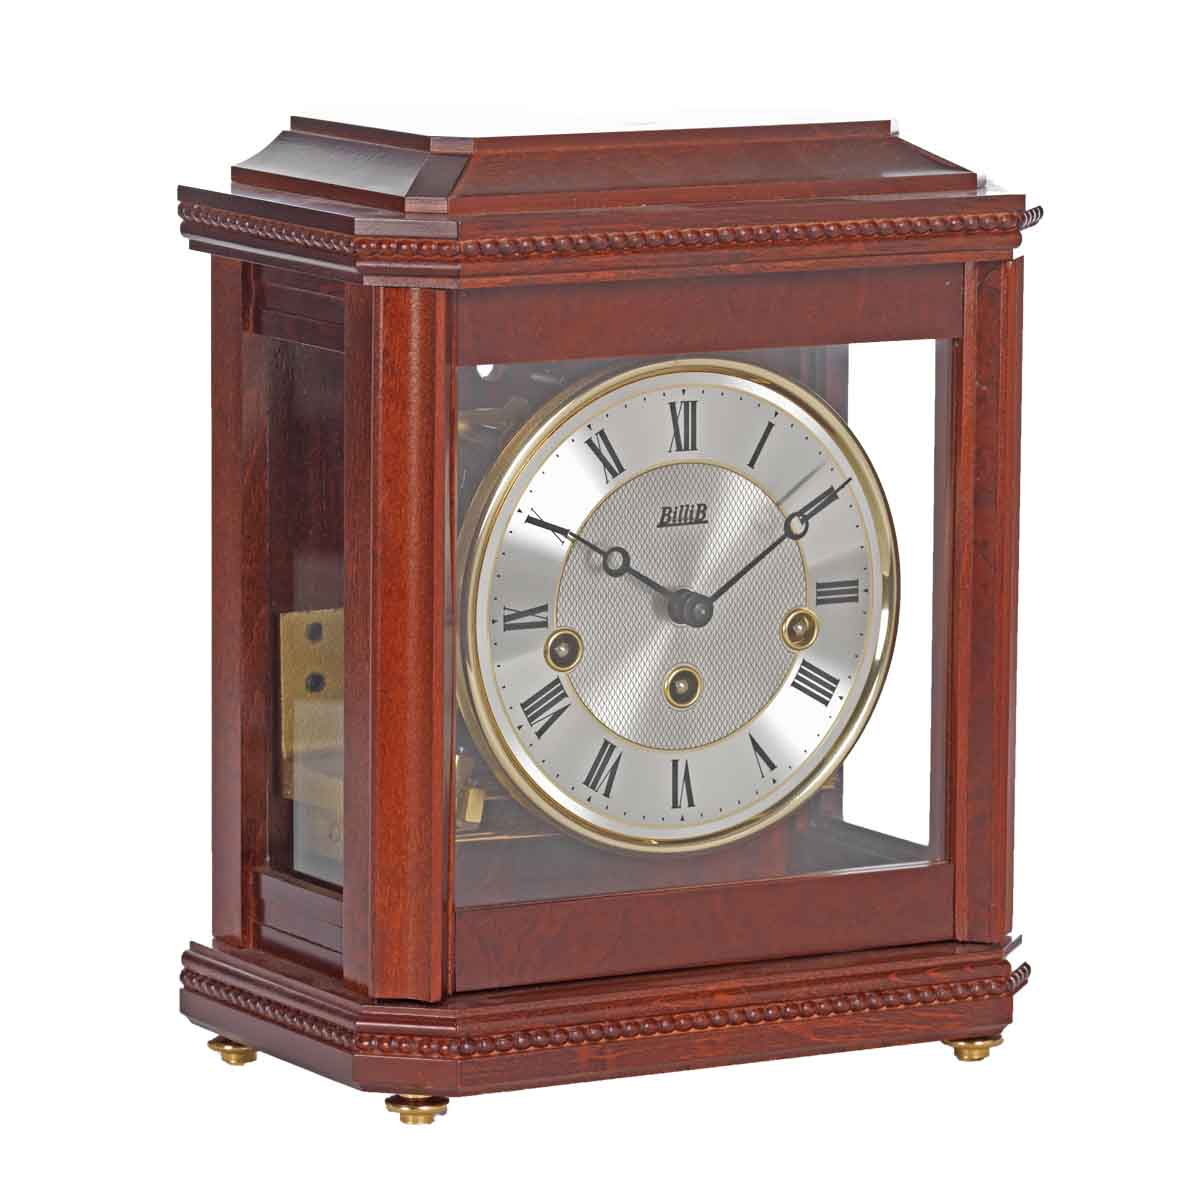 BIRCHGROVEMahogany Finish. Mantel Table Clock